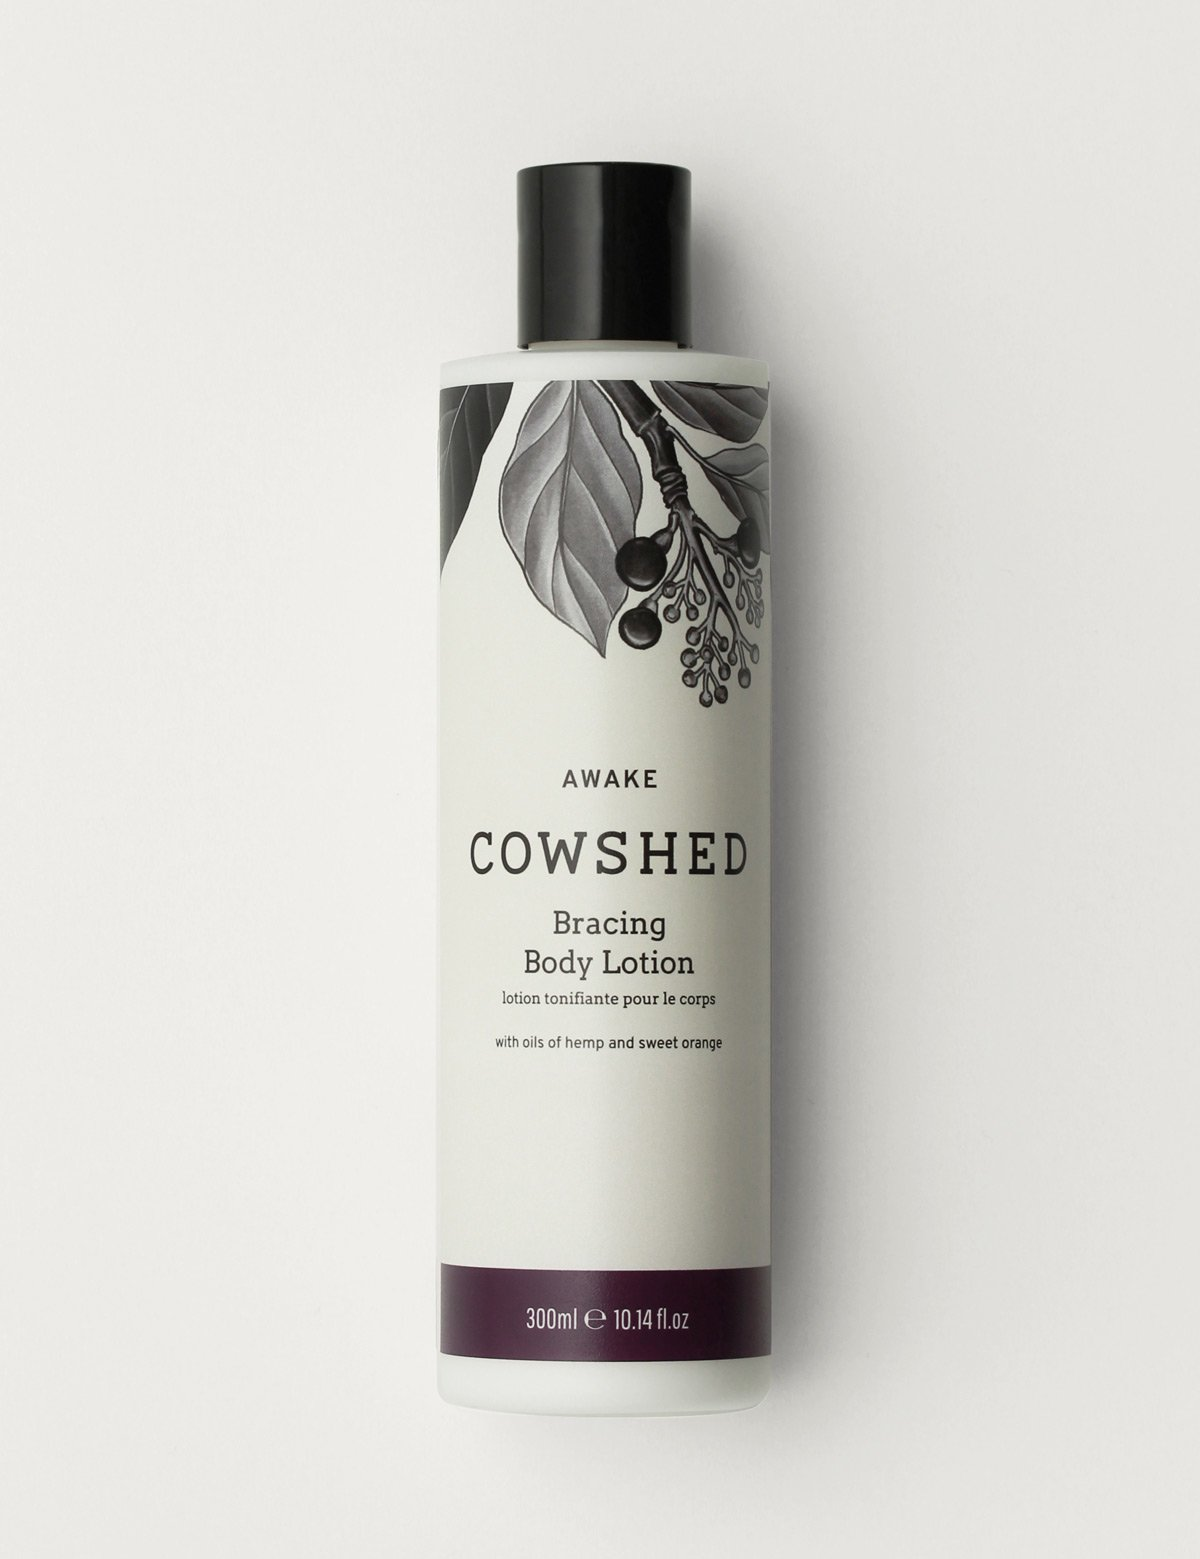 Cowshed branding agency in London